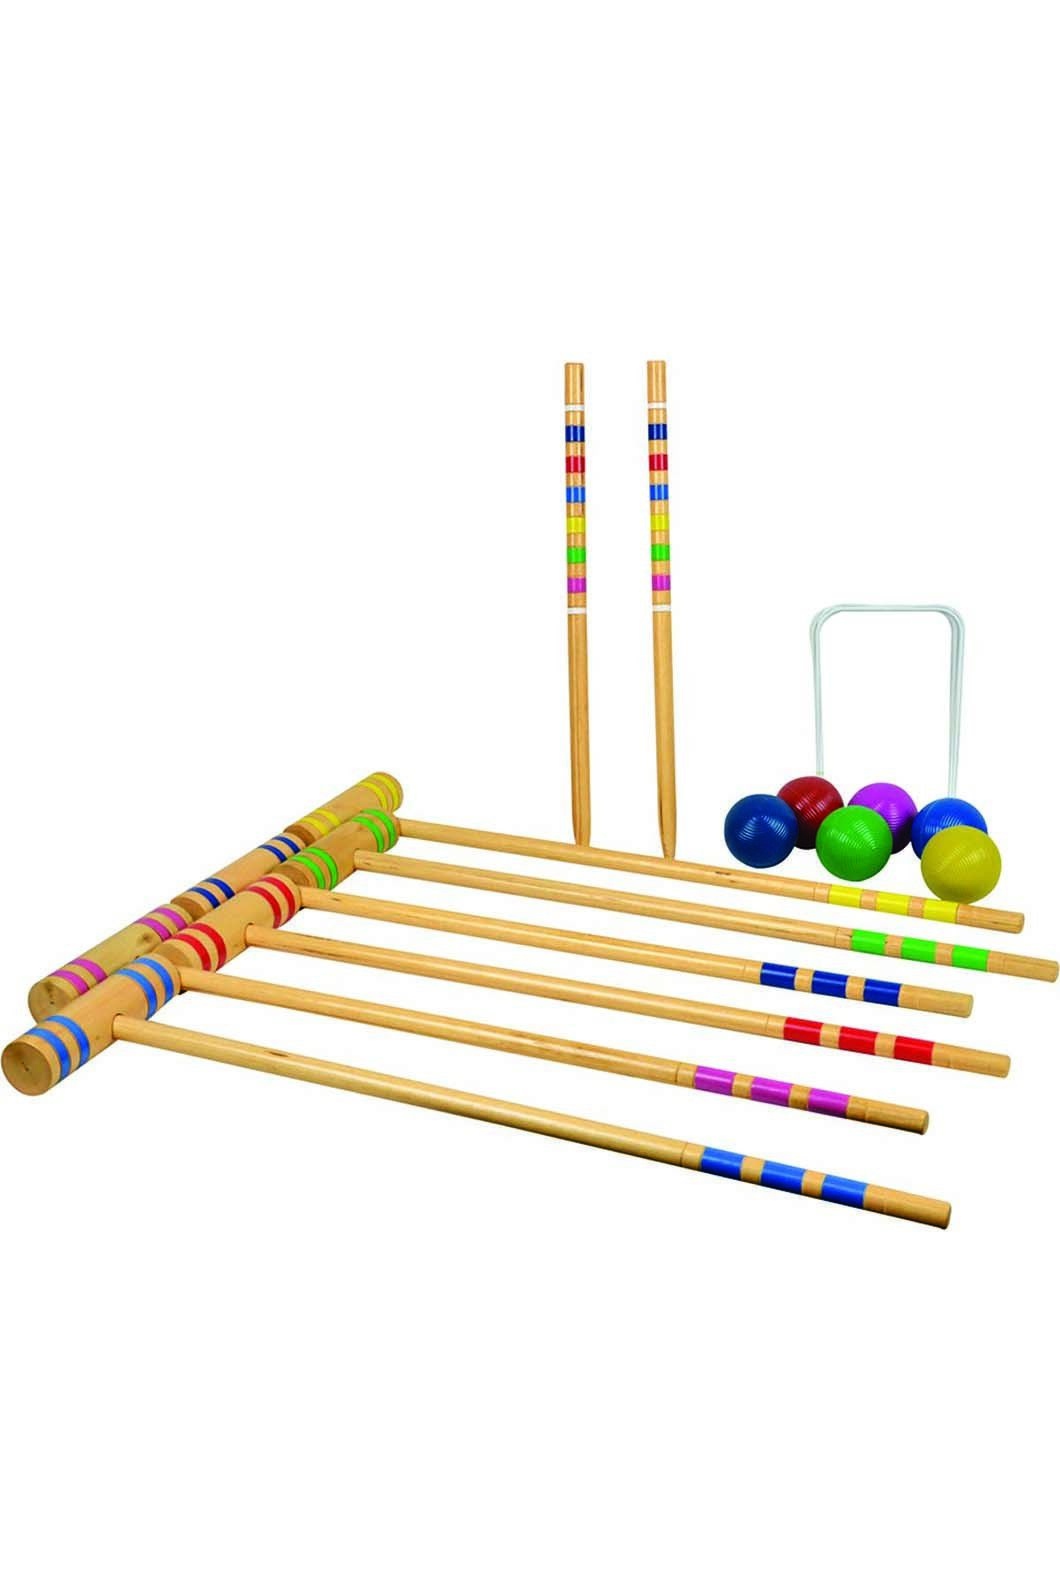 Verao Croquet Set, None, hi-res